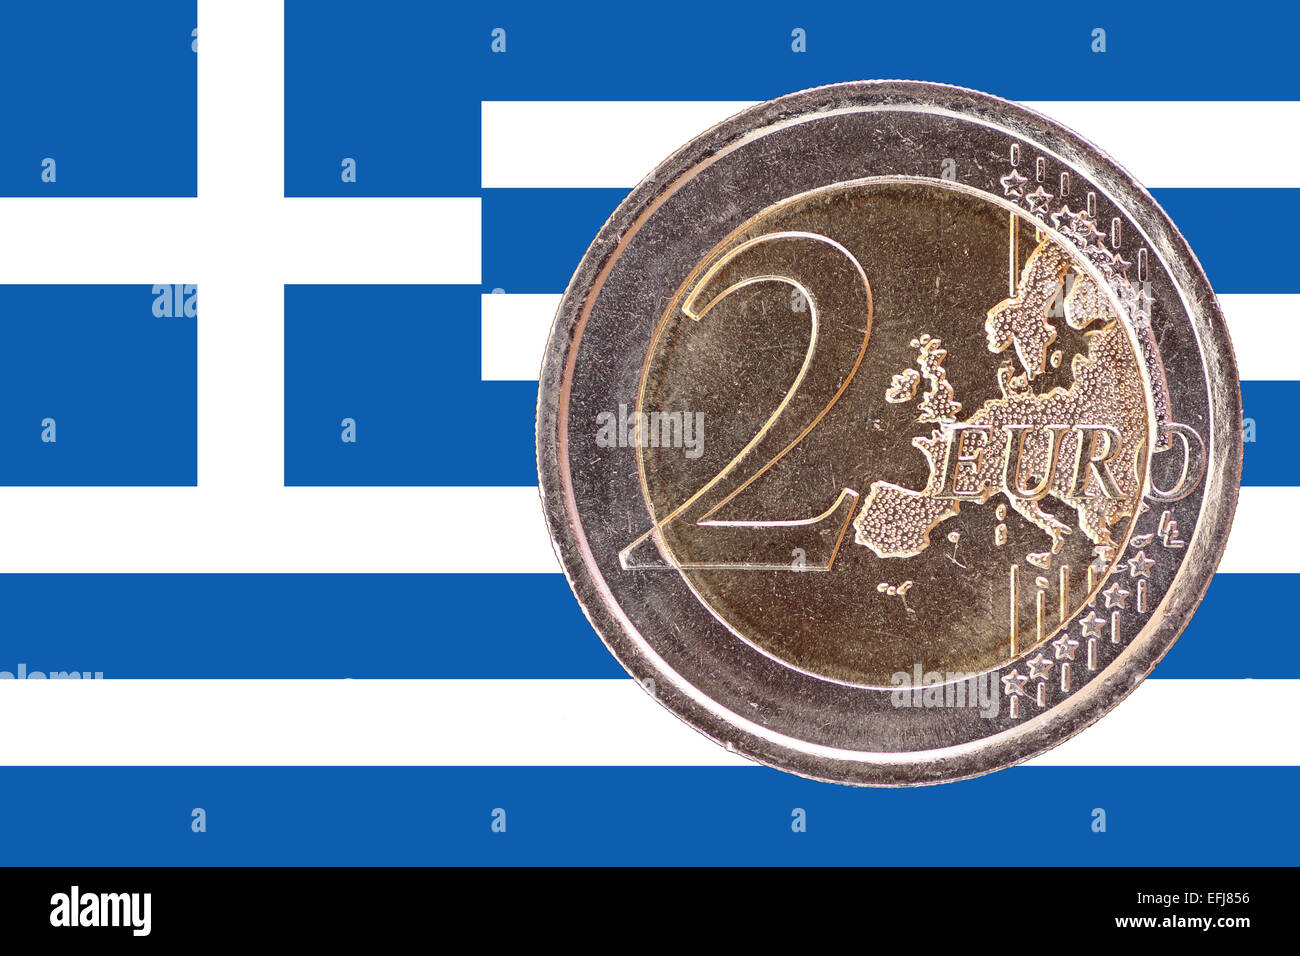 Common face of two euros coin isolated on the national flag of Greece as background - Stock Image